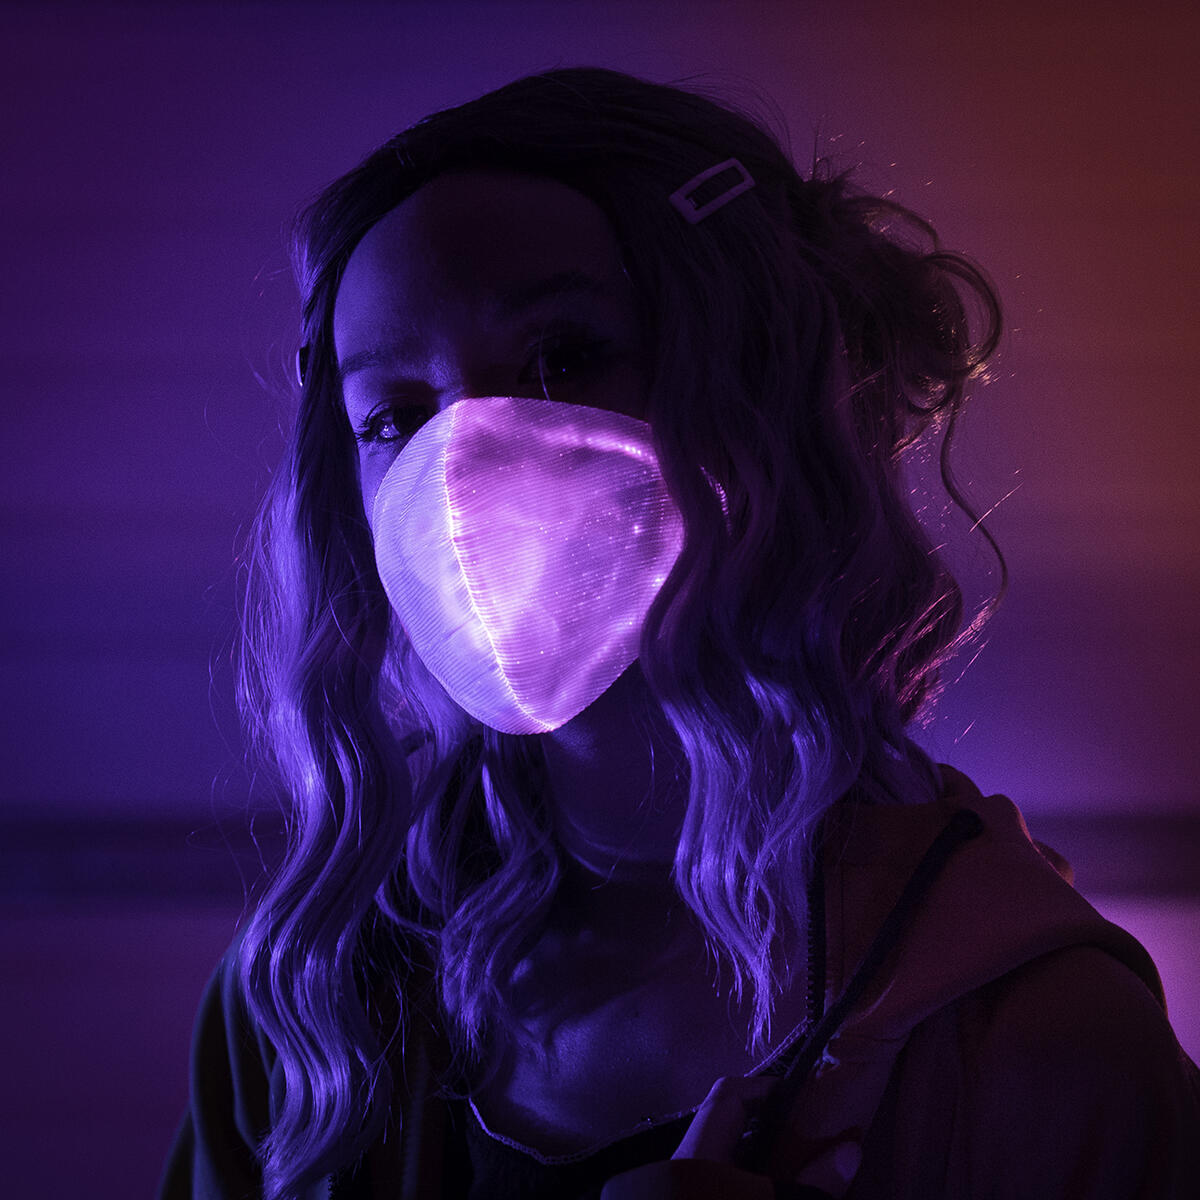 Live Wire LED Face Mask, USB Powered, Bright, Multi Colored, Breathable